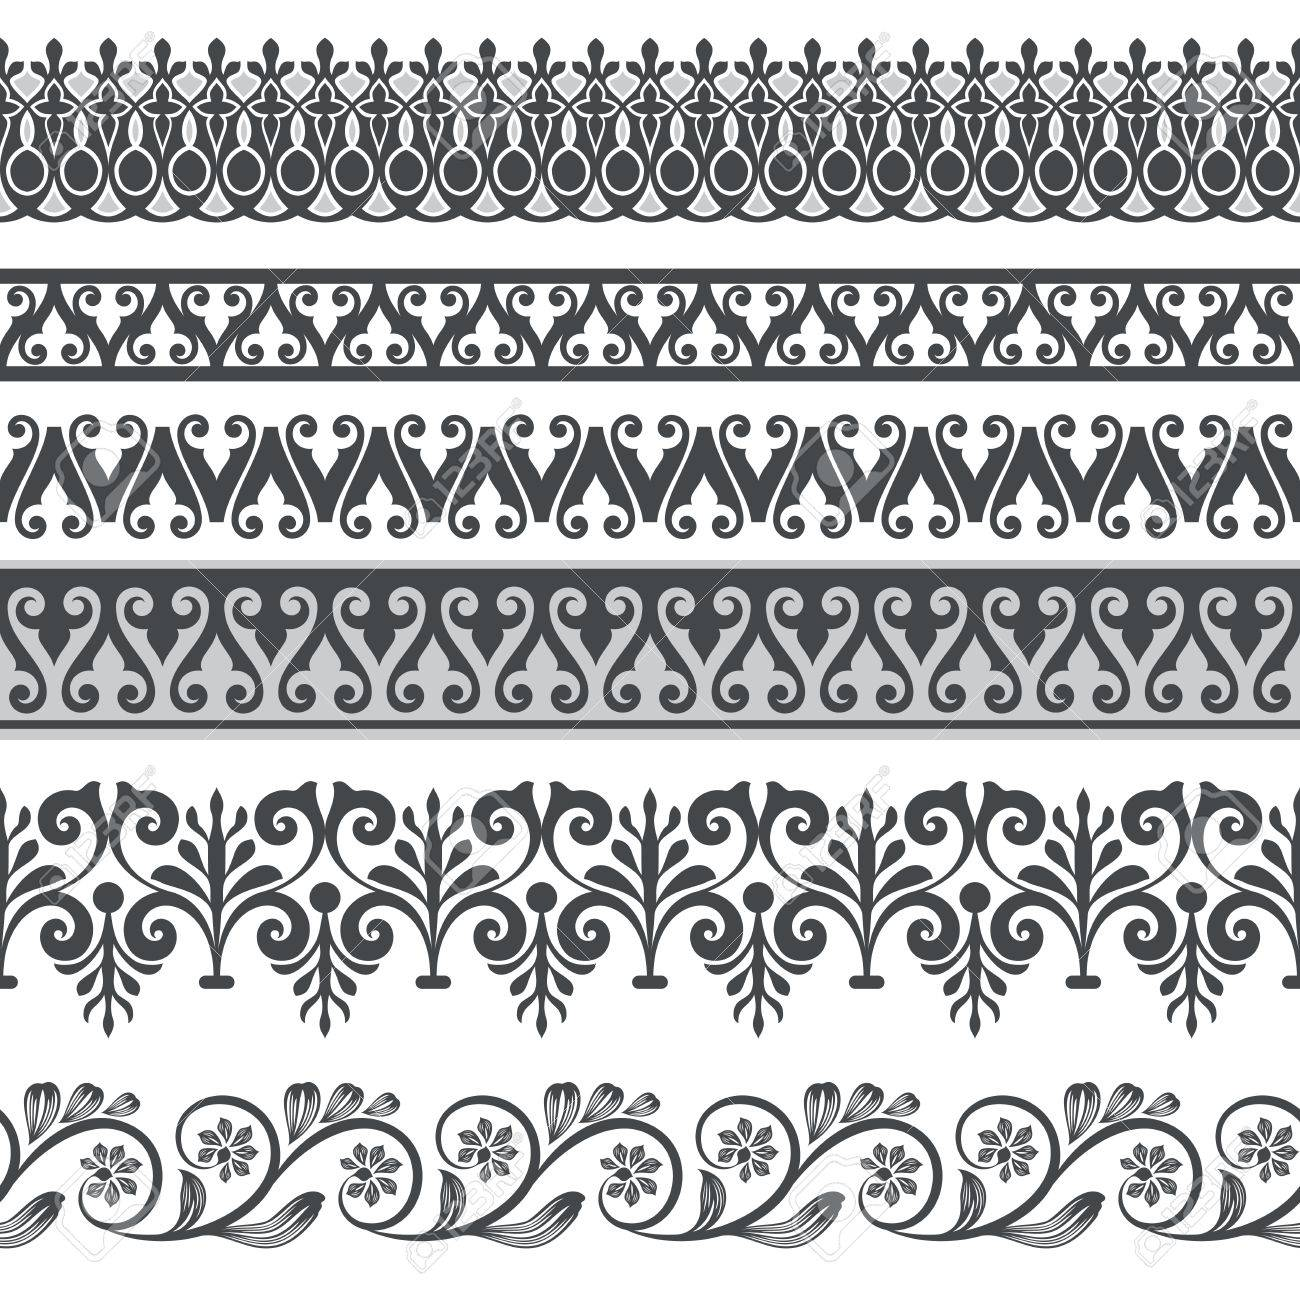 Seamless Floral Border Vector Template Ornament Repeating Divider Royalty Free Cliparts Vectors And Stock Illustration Image 74694052